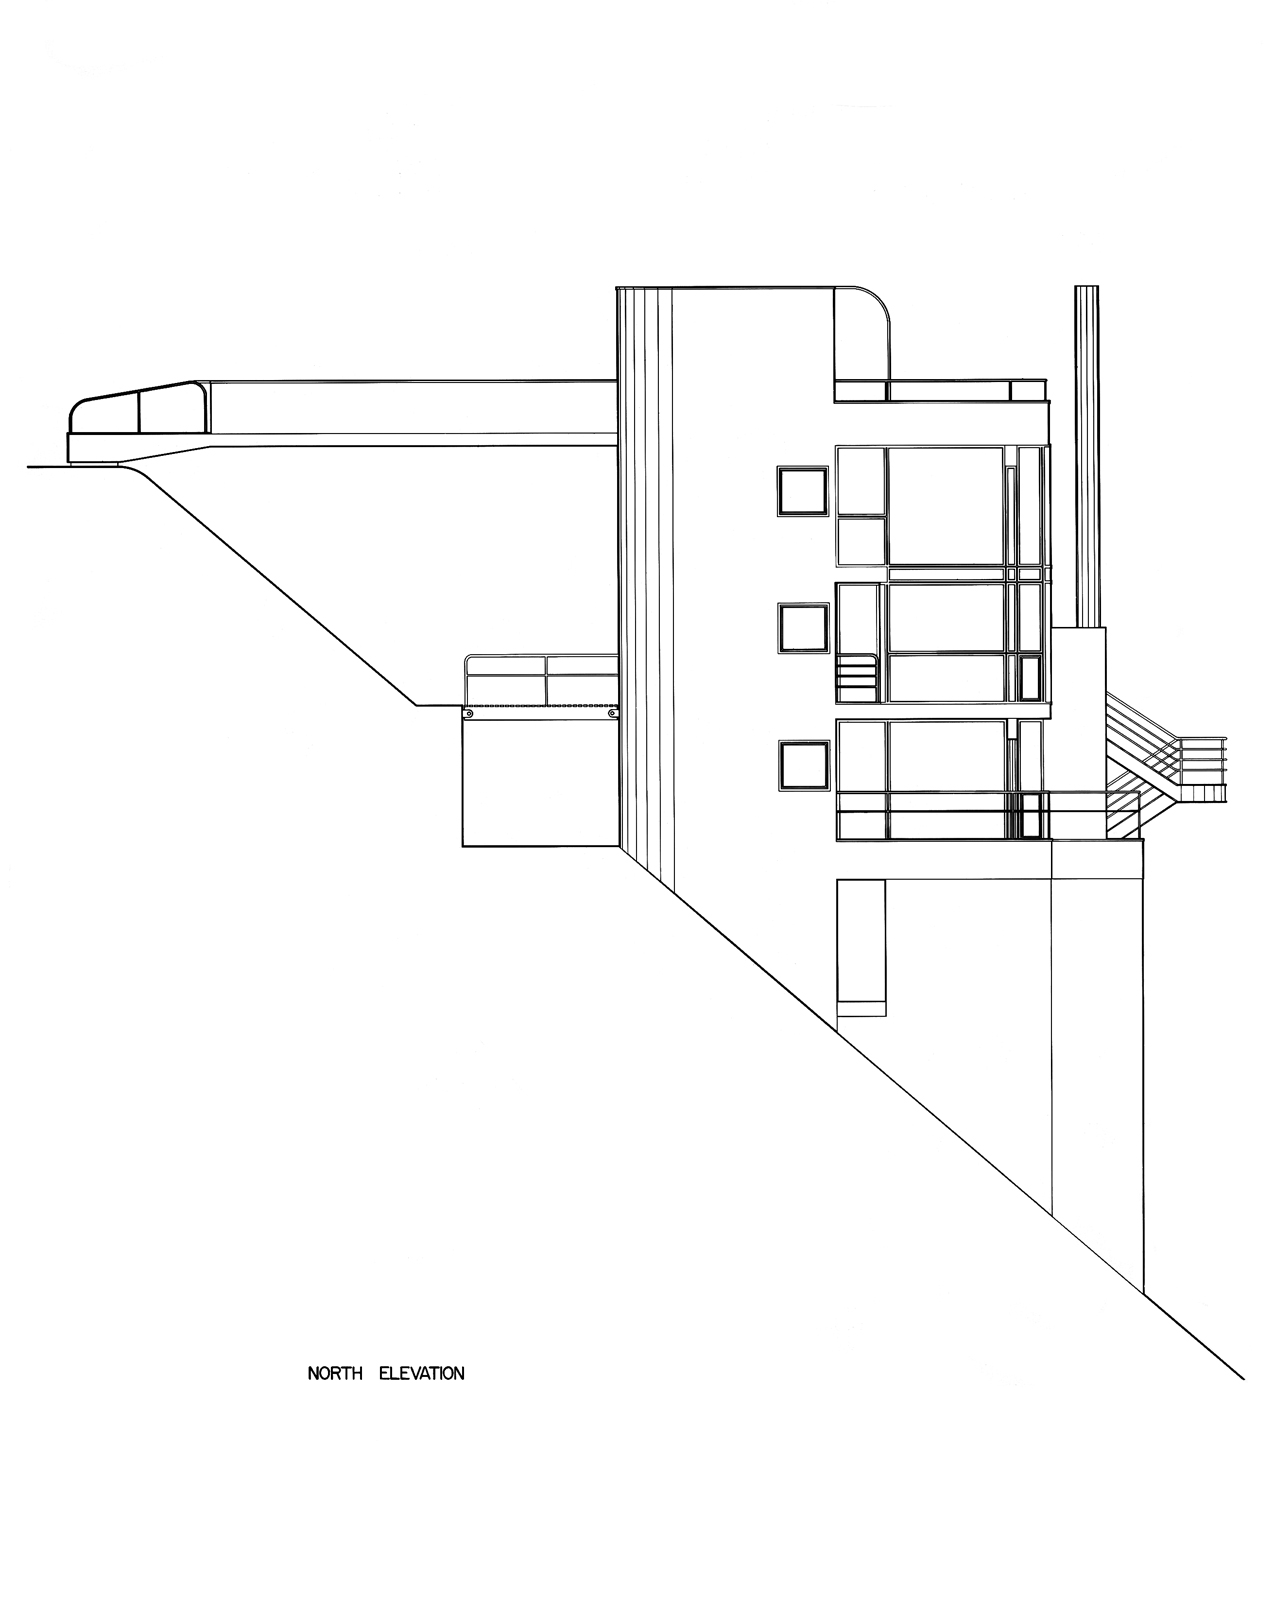 Original illustrations of the slope of the Douglas House by Richard Meier